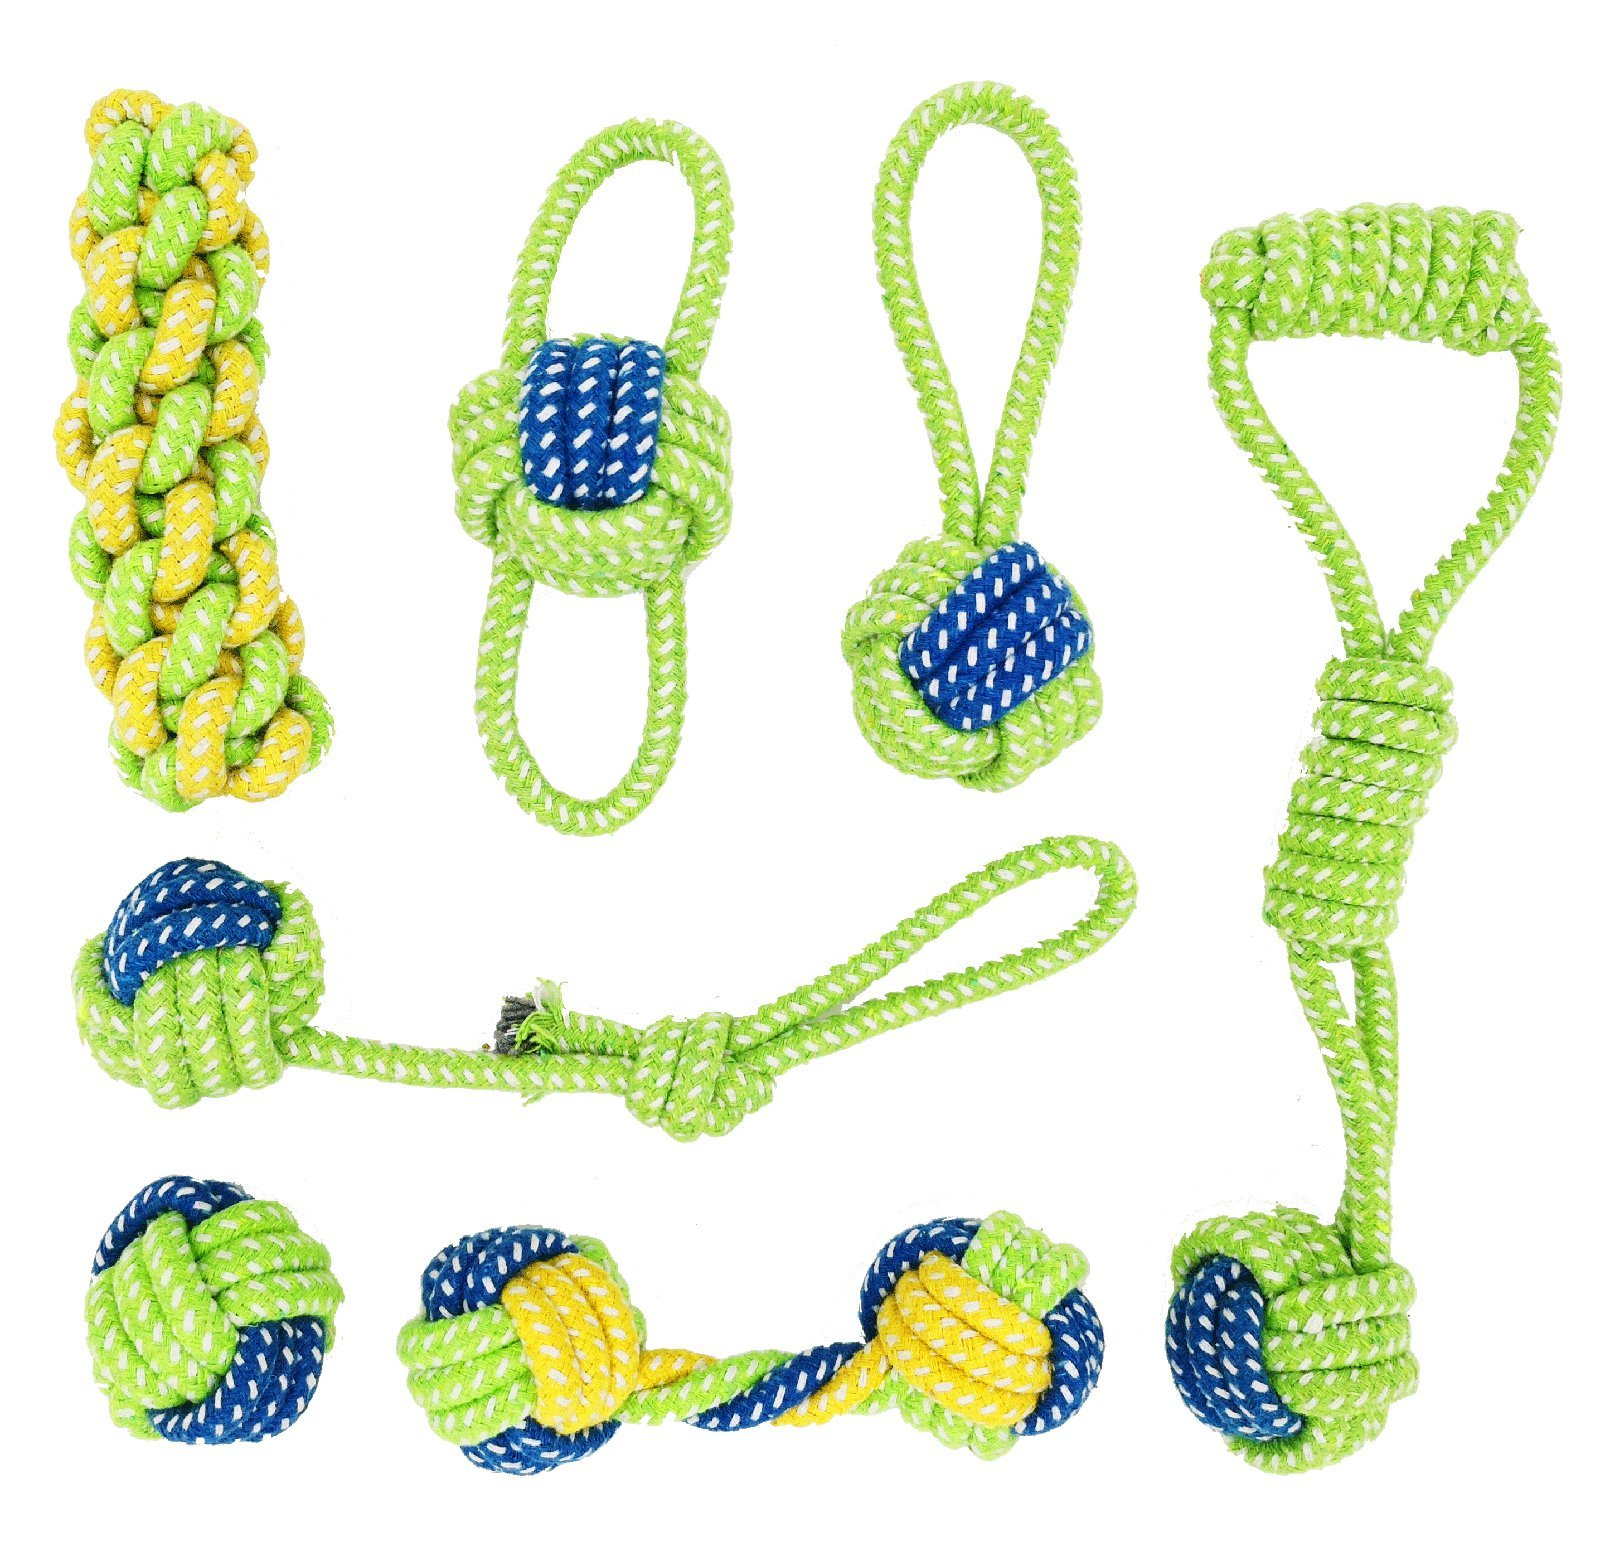 Banfeng Dog Rope Toys Set 7 Pack for Small Medium Dog, Premium Dog Chew Toys Interactive Cotton Rope Knot Toys and Dog Ball for Puppy Pet